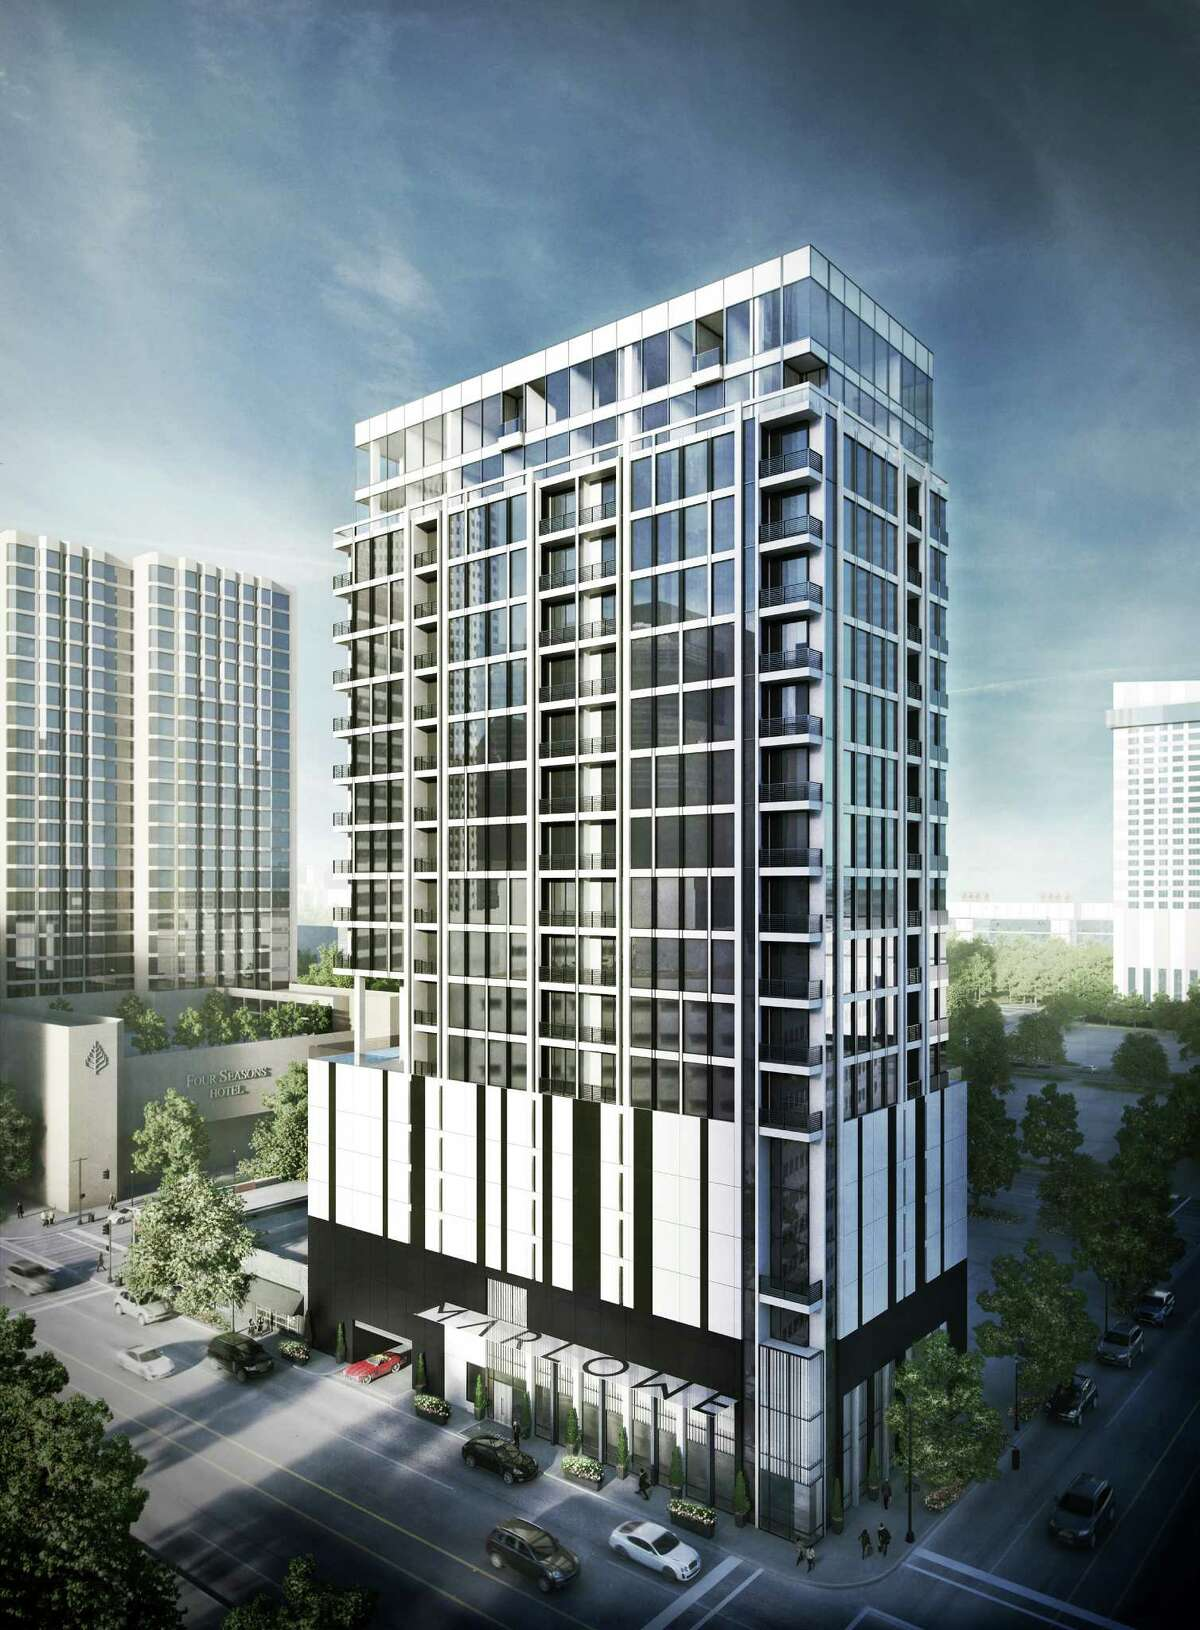 Marlowe is a 20-story condominium slated for a downtown site near the House of Blues.